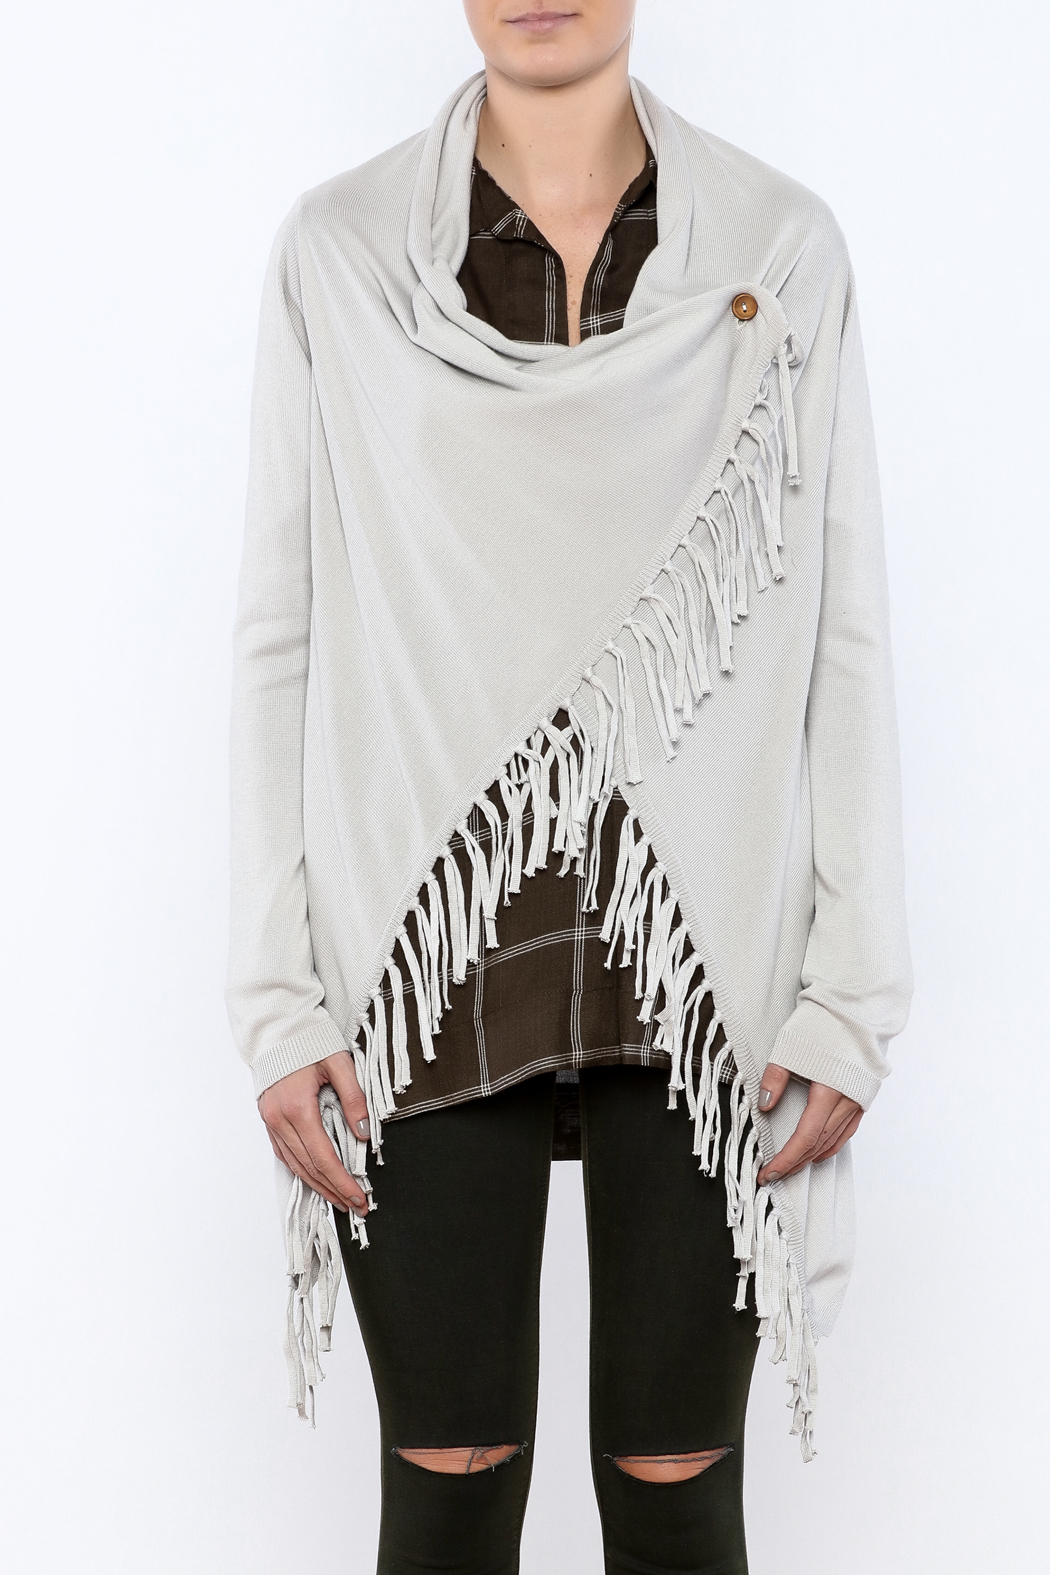 PPLA Fringe Wrap Sweater from Texas by Stephanie's Stuff — Shoptiques